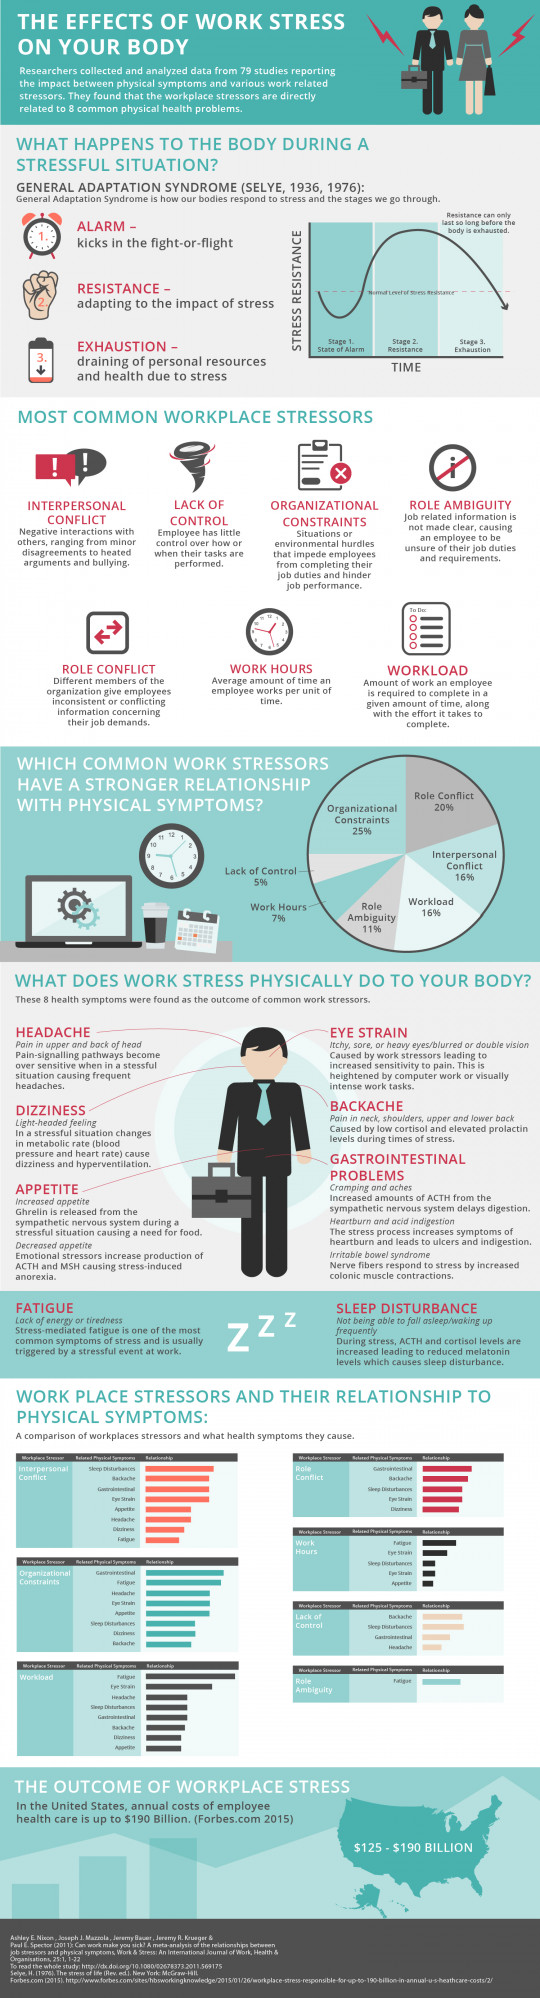 The Effects of Work Stress on Your Body